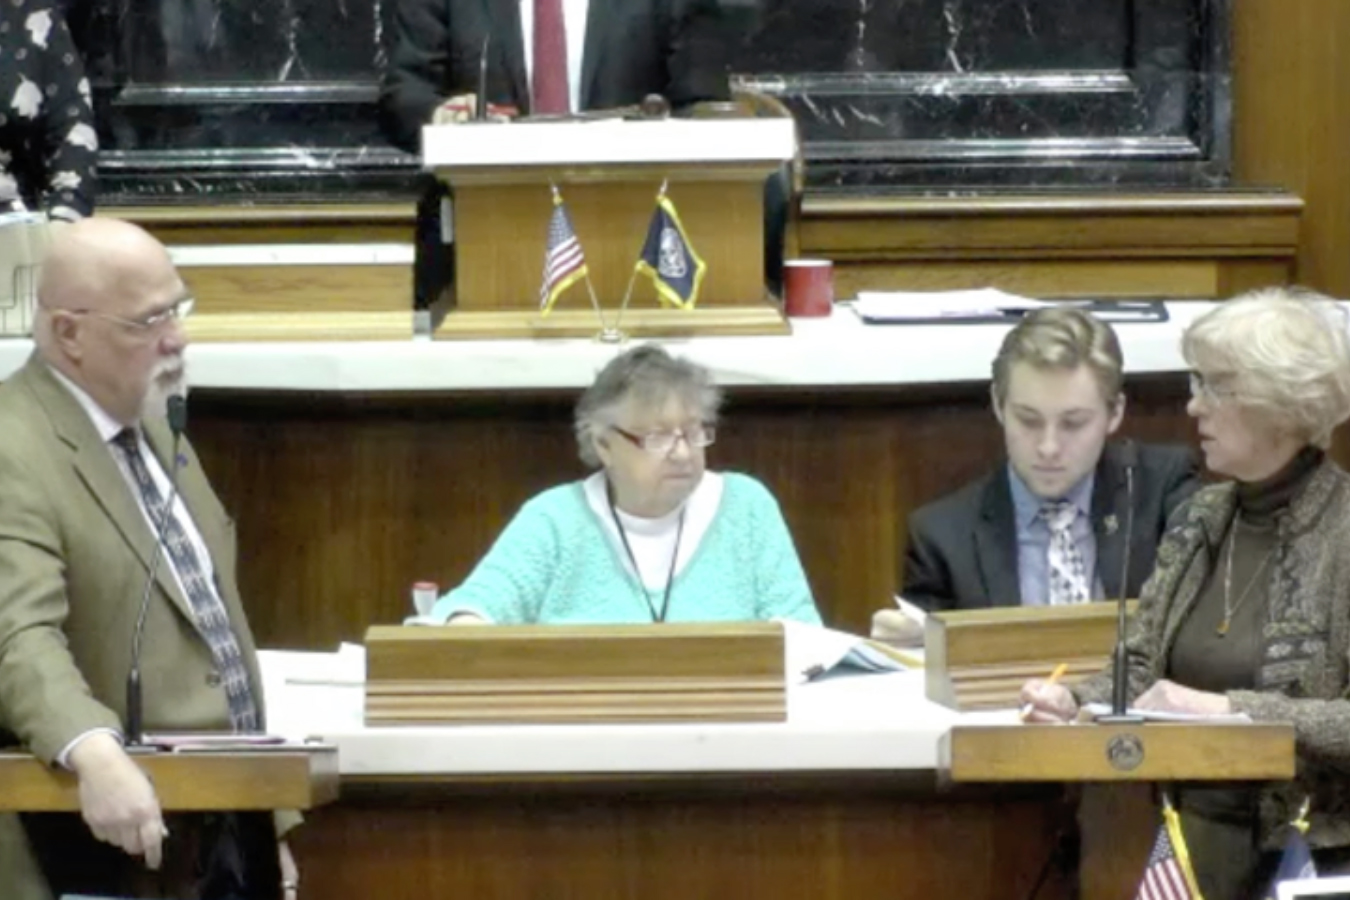 Reps. Tim Brown (R-Crawfordsville) and Sue Errington (D-Muncie) discuss the to-be-appointed Muncie school board on the House floor Wednesday evening.